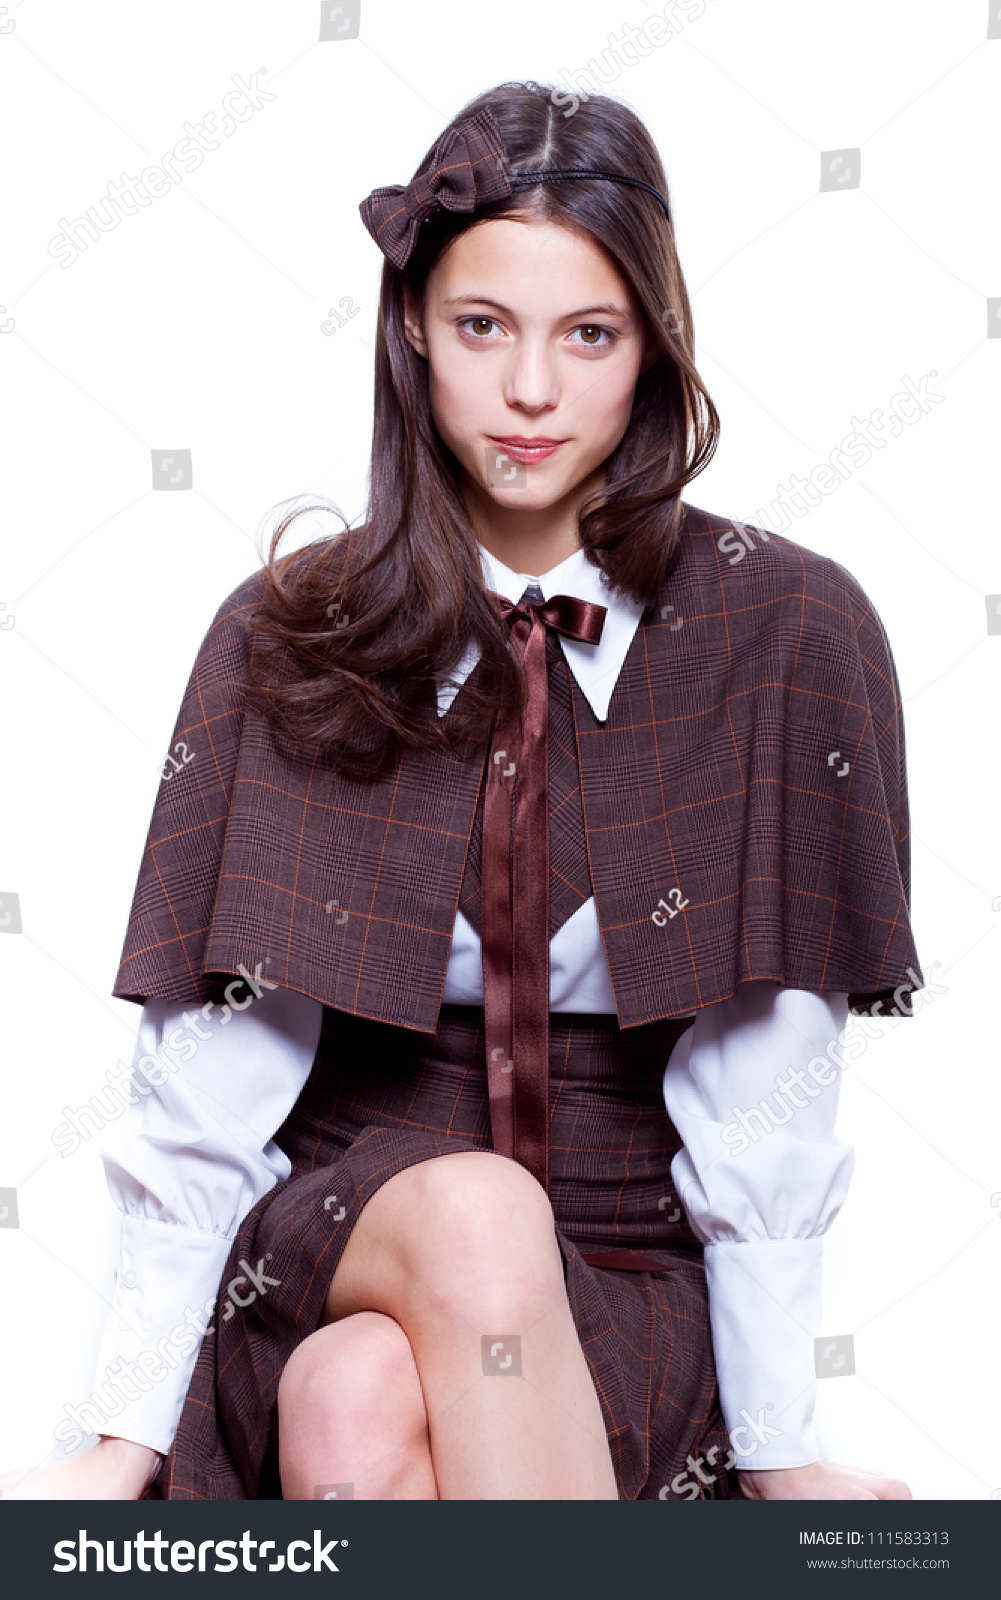 School Girl Wearing Old Style Formal Clothes Isolated Stock Photo 111583313 Shutterstock